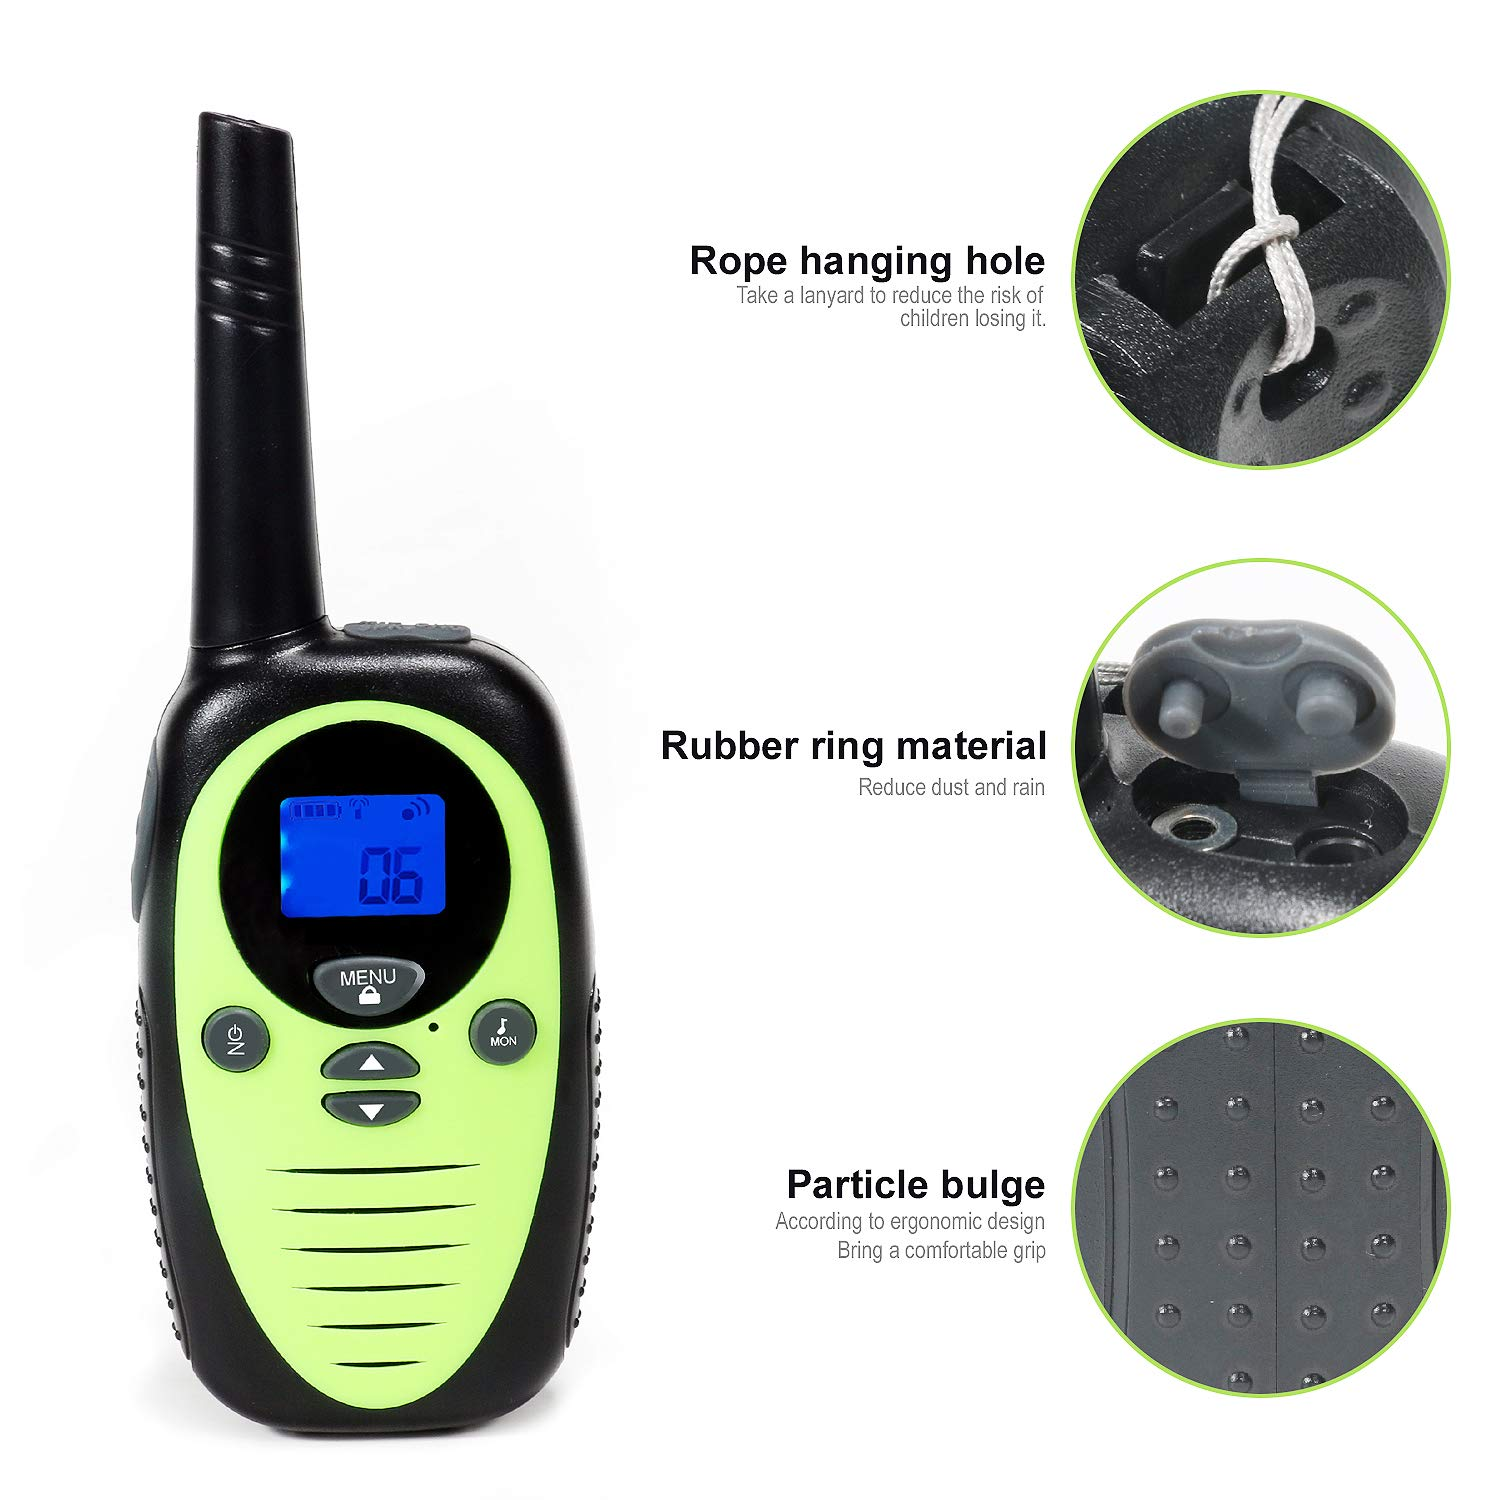 FREE TO FLY Kids Walkie Talkies Kid Toys 22 Channel FRS 2 Way Radios Party Toys for Camping/Hiking/Adventures 3.0 Miles Range Suit 6 UP Year Old Kids & Adults ( Three Packs with 9 Batteries ) by FREE TO FLY (Image #5)